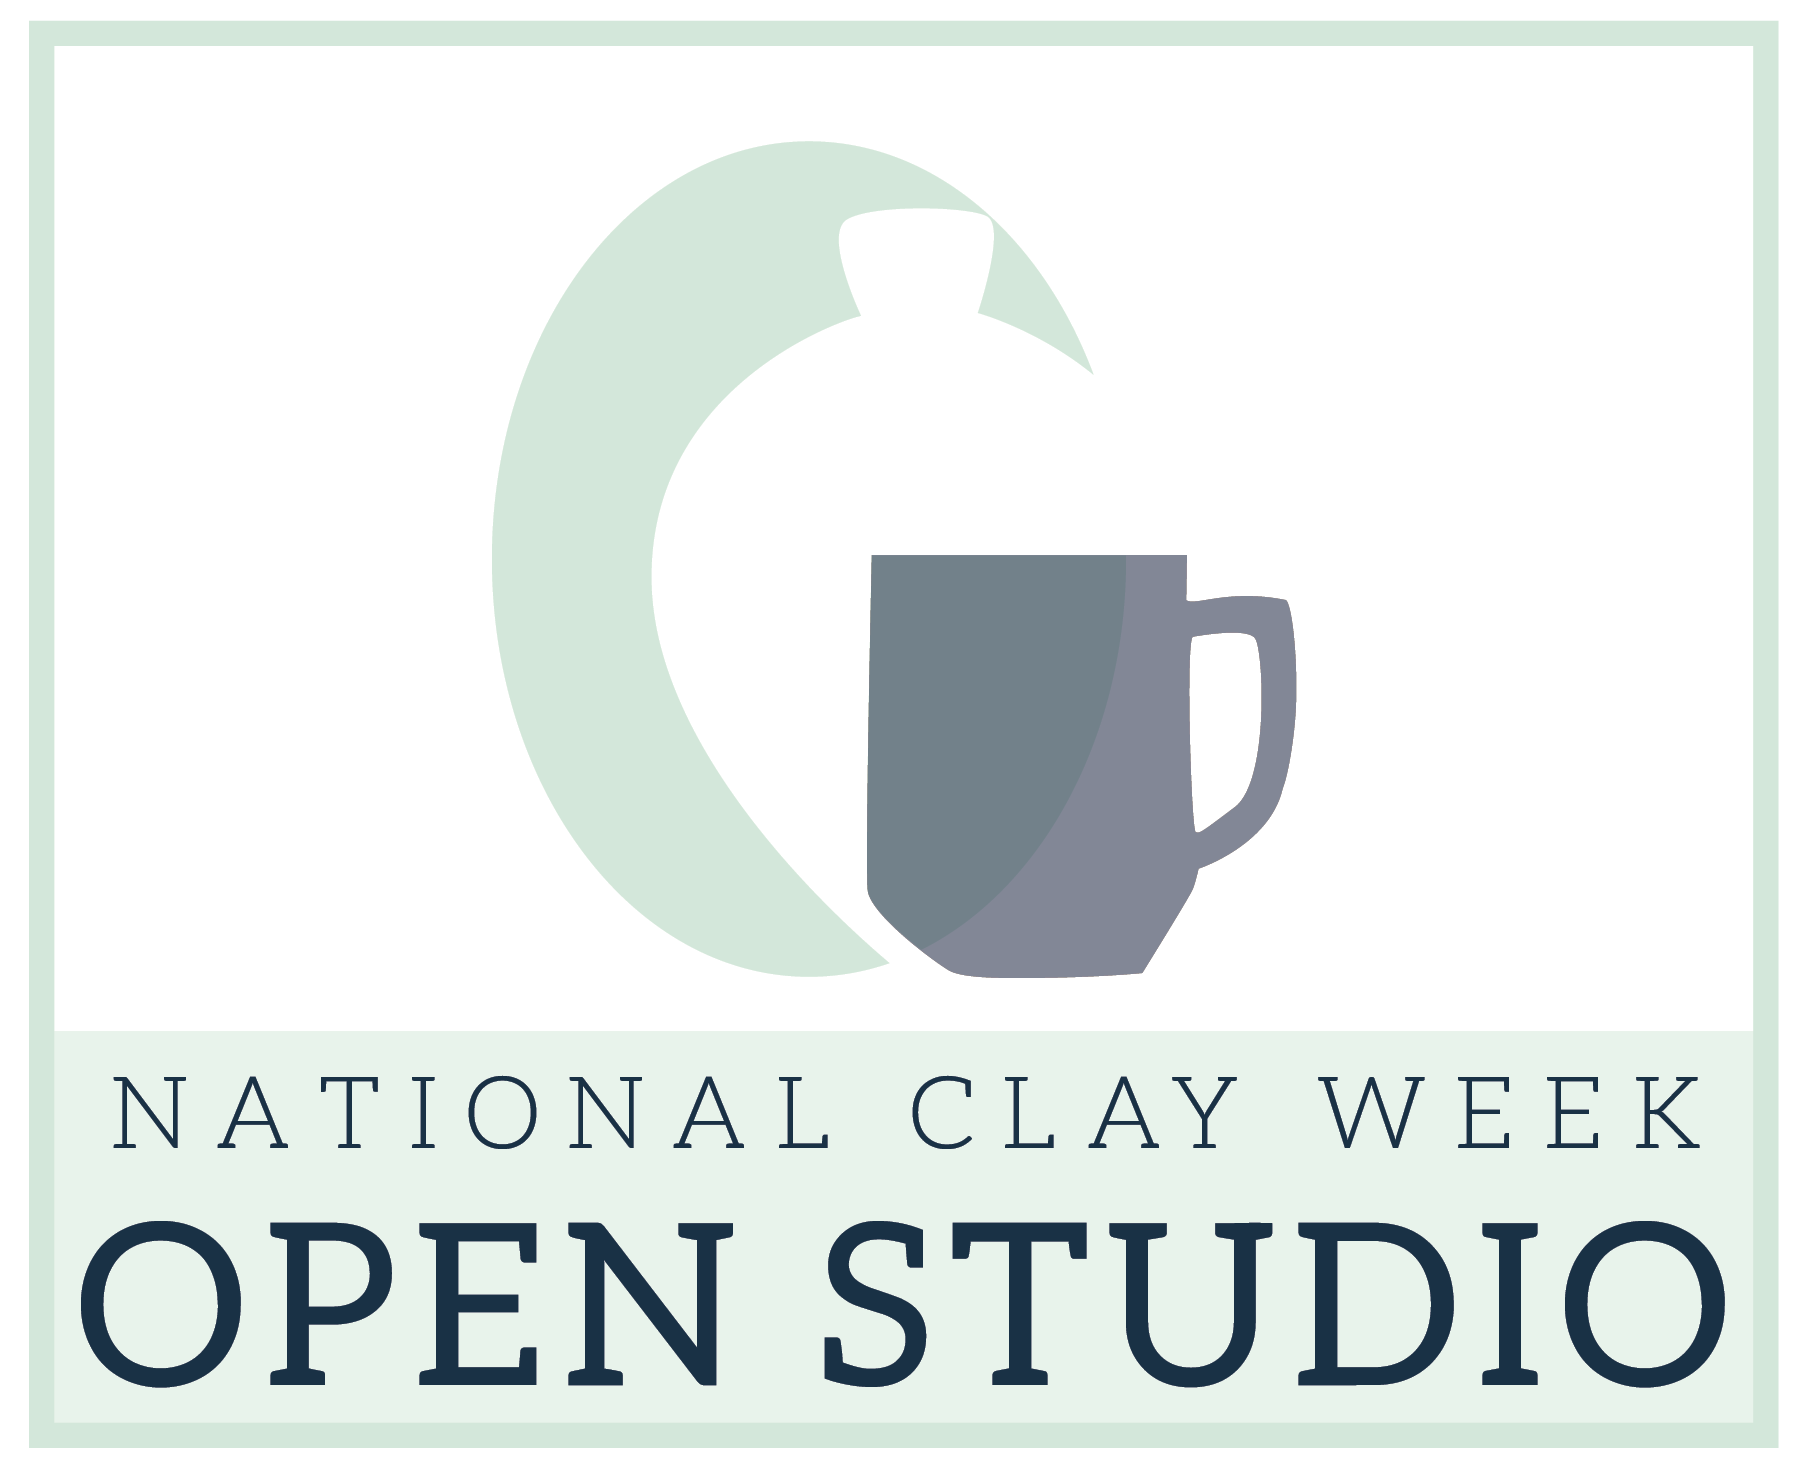 national clay week logo